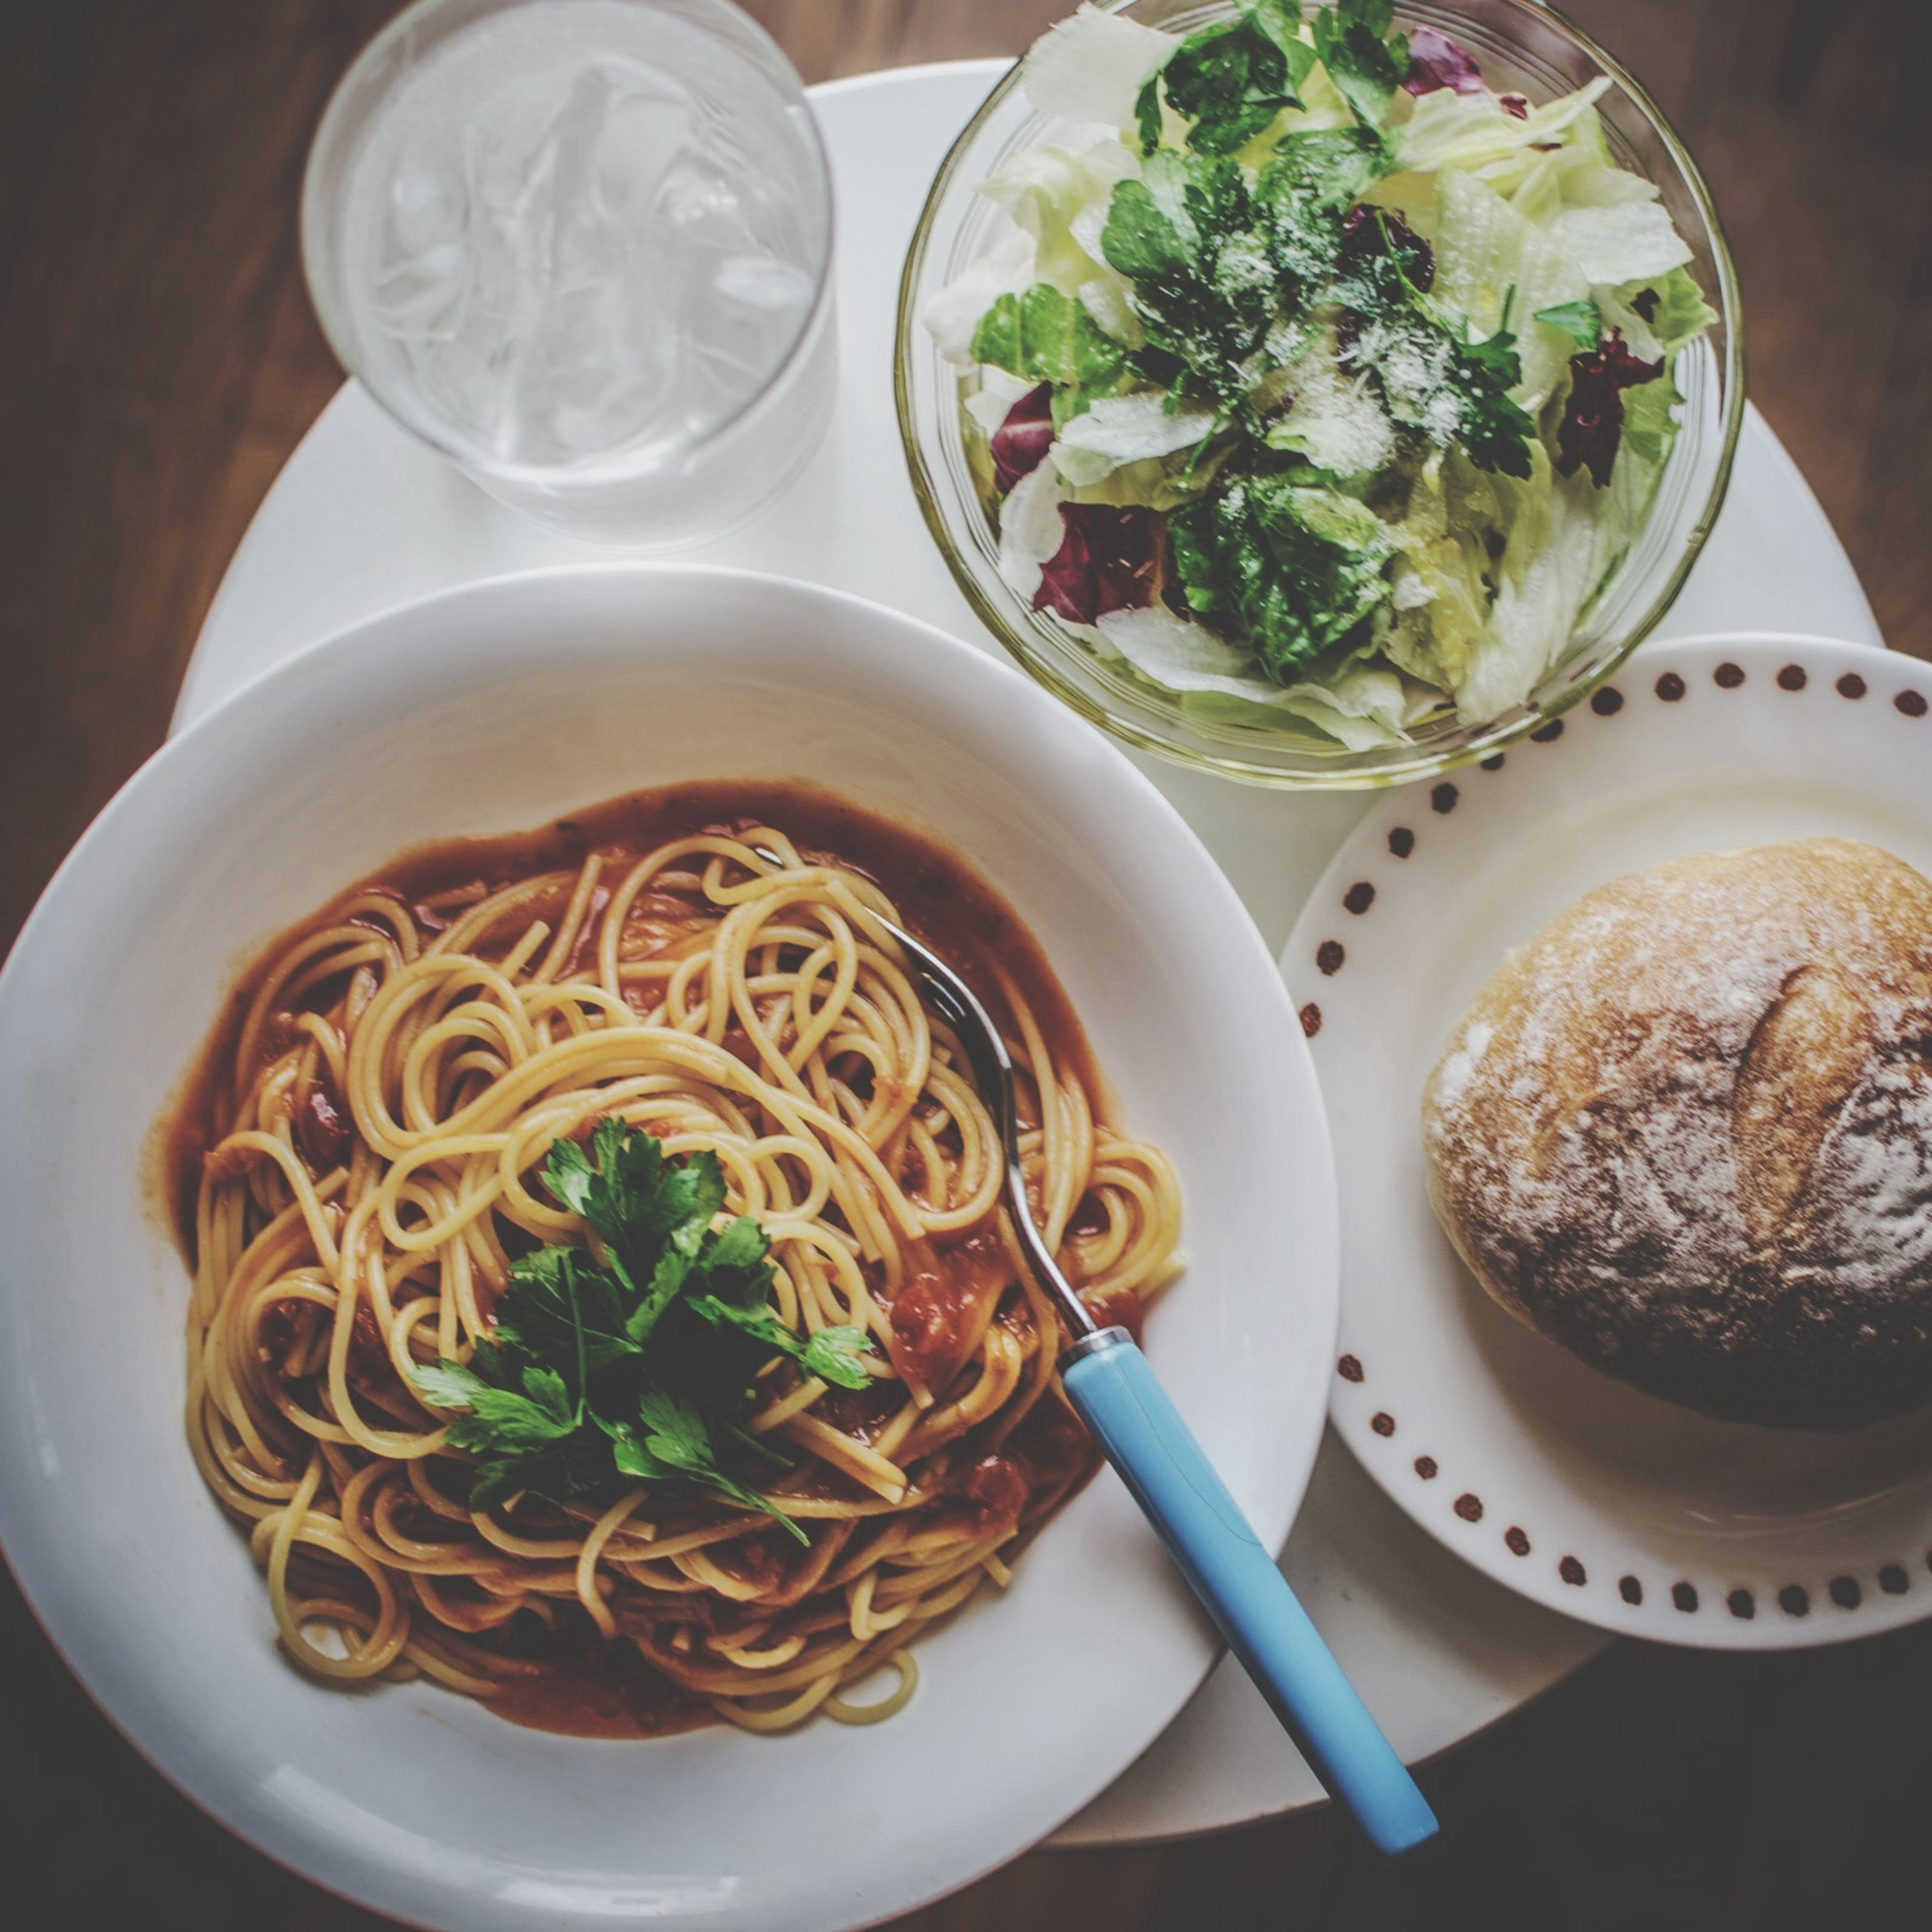 food and drink, food, indoors, freshness, ready-to-eat, plate, bowl, meal, healthy eating, table, serving size, still life, noodles, high angle view, close-up, soup, indulgence, spoon, served, directly above